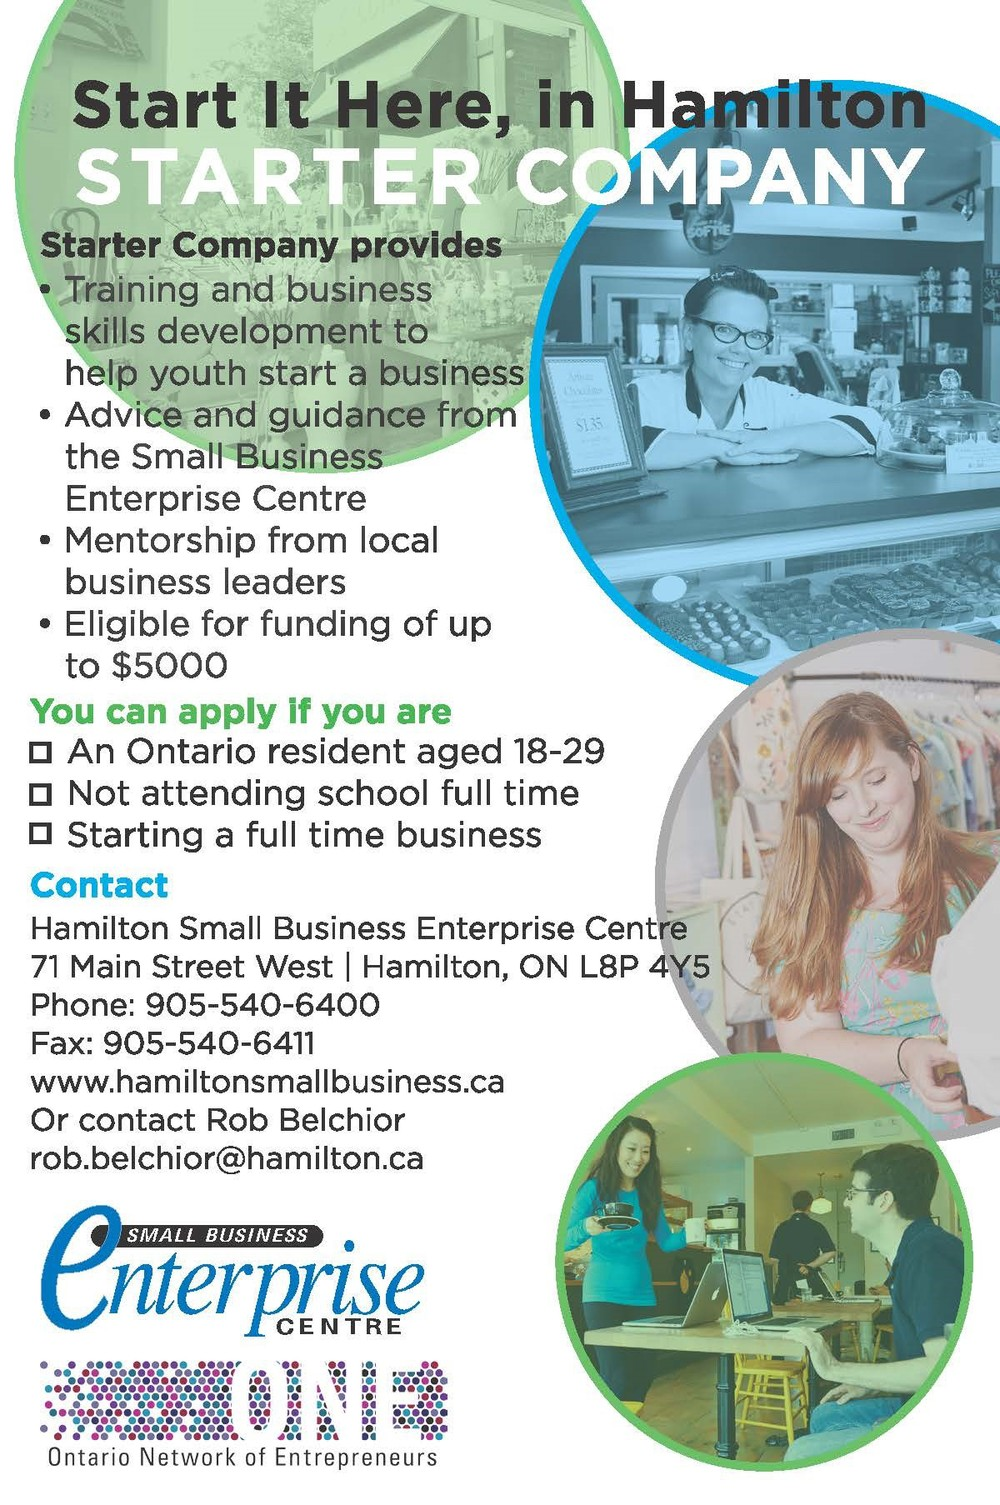 The Small Business Enterprise Centre would like to invite you to learn more about the Starter Company program available for individuals who wish to start their own full-time business. This program offers individuals 18-29 years of age the opportunity to participate in training and business skills development, mentorship opportunities, and funding options up to $5,000 that will assist them in starting and maintaining a business within the Hamilton region.     Please contact the SBEC if you wish to attend. We look forward to seeing you.     Starter Company Overview and Networking Lunch  Tuesday, September 9, 2014  11:30am – 1:30pm  Small Business Enterprise Centre  71 Main Street West, Hamilton  (905) 540-6400   mail@hamiltonsmallbusiness.ca